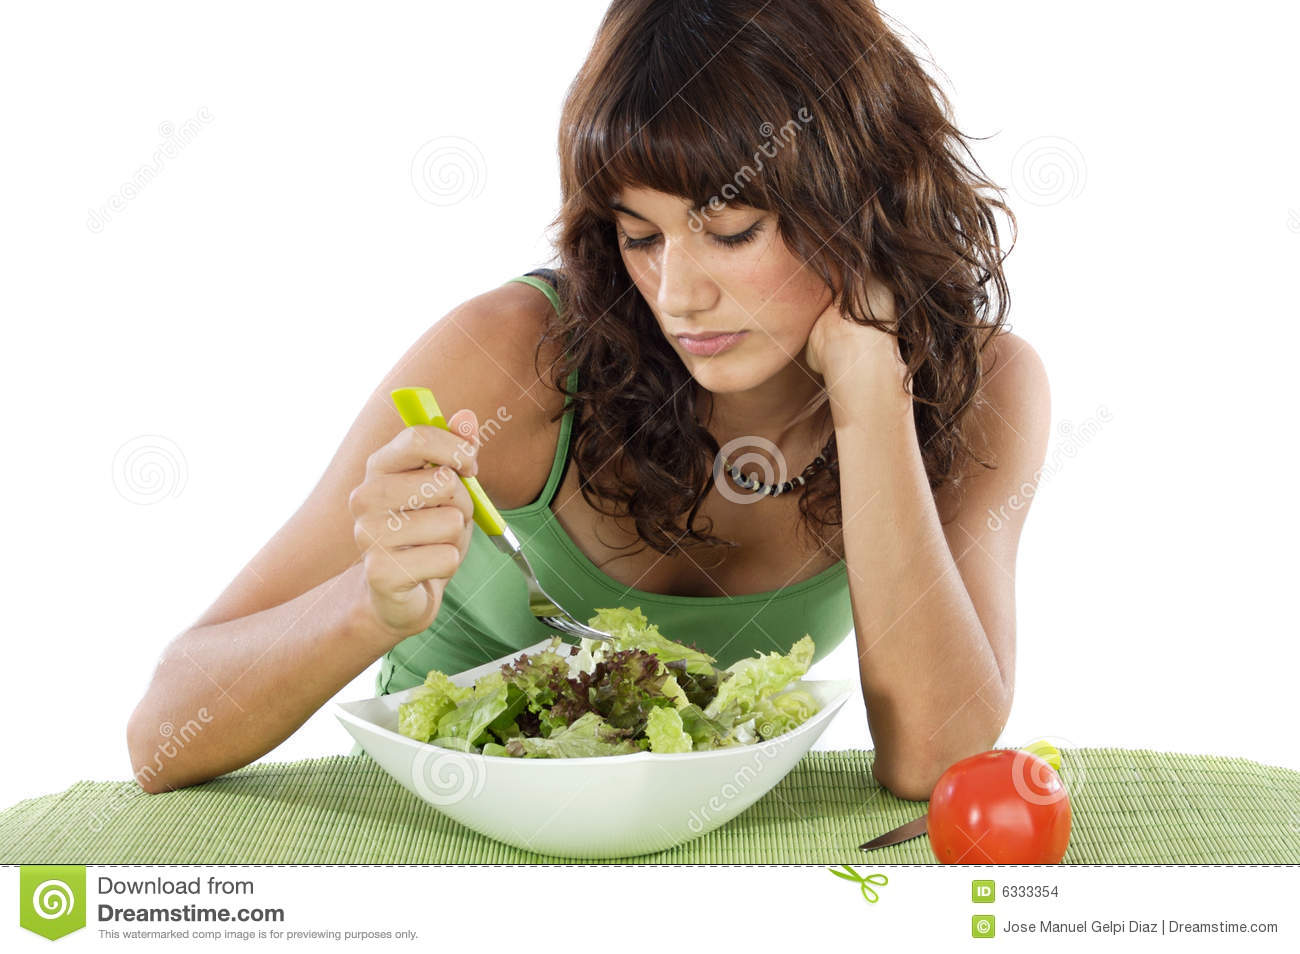 sad-teen-eating-salad-6333354.jpg